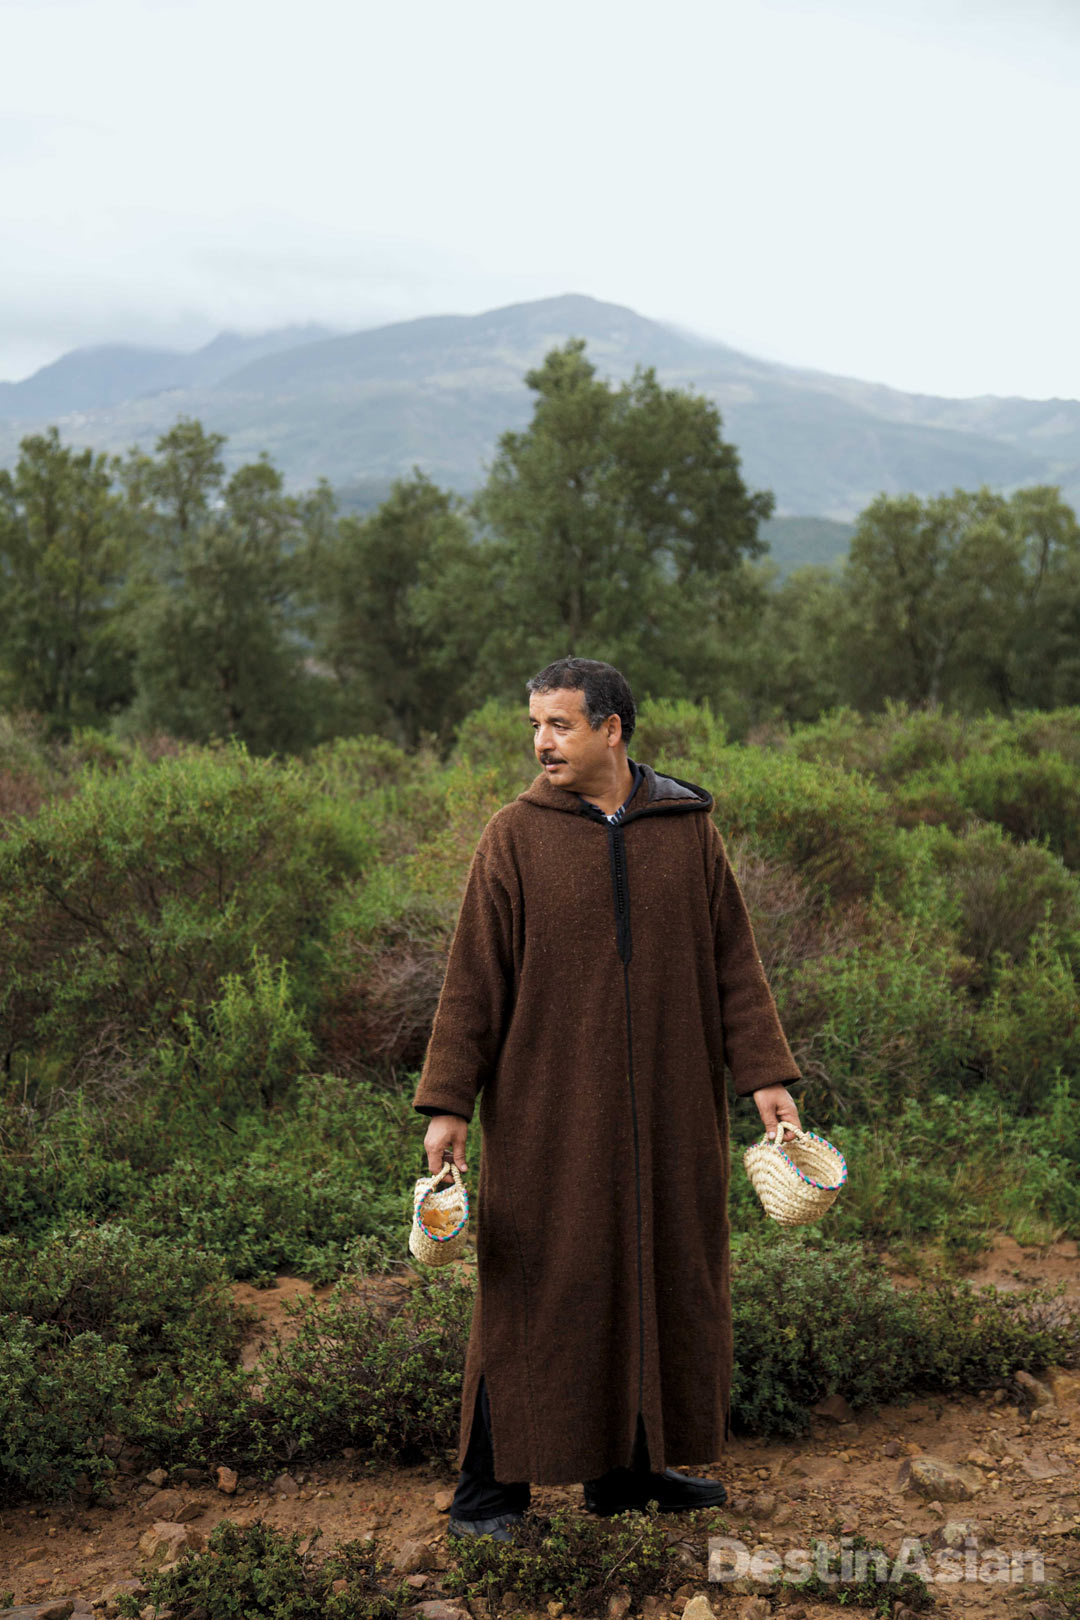 Local forager and mushroom expert Mohammed Elafia in the mountains near Chefchaouen.